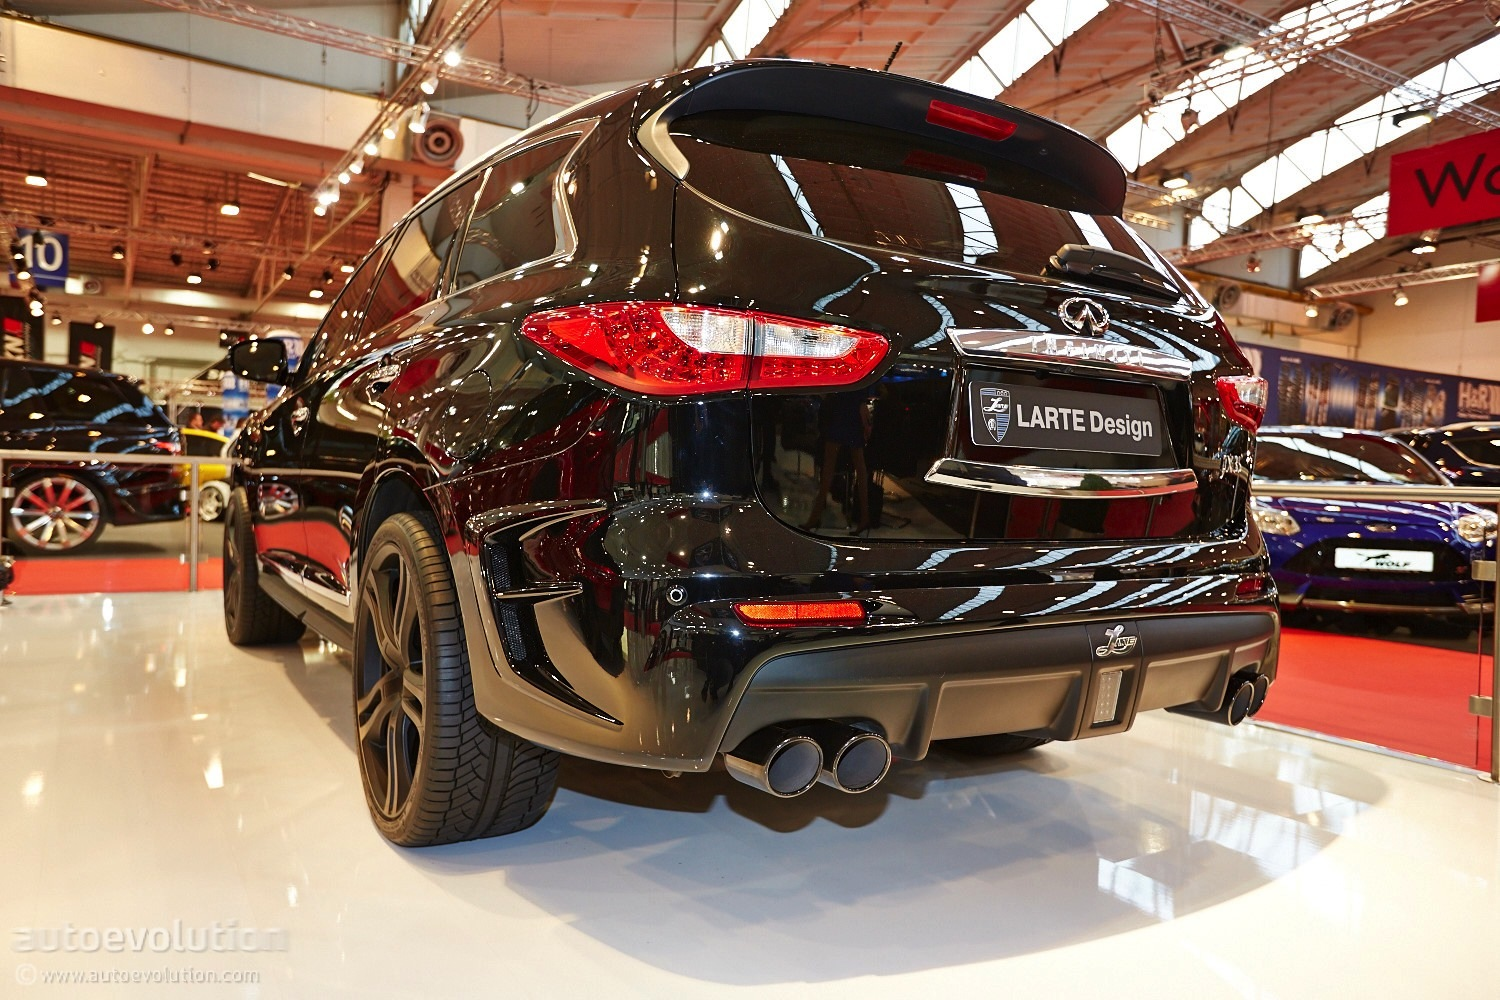 Design Automobile Essen Larte Design Infiniti Qx60 Jx35 At The Essen Motor Show